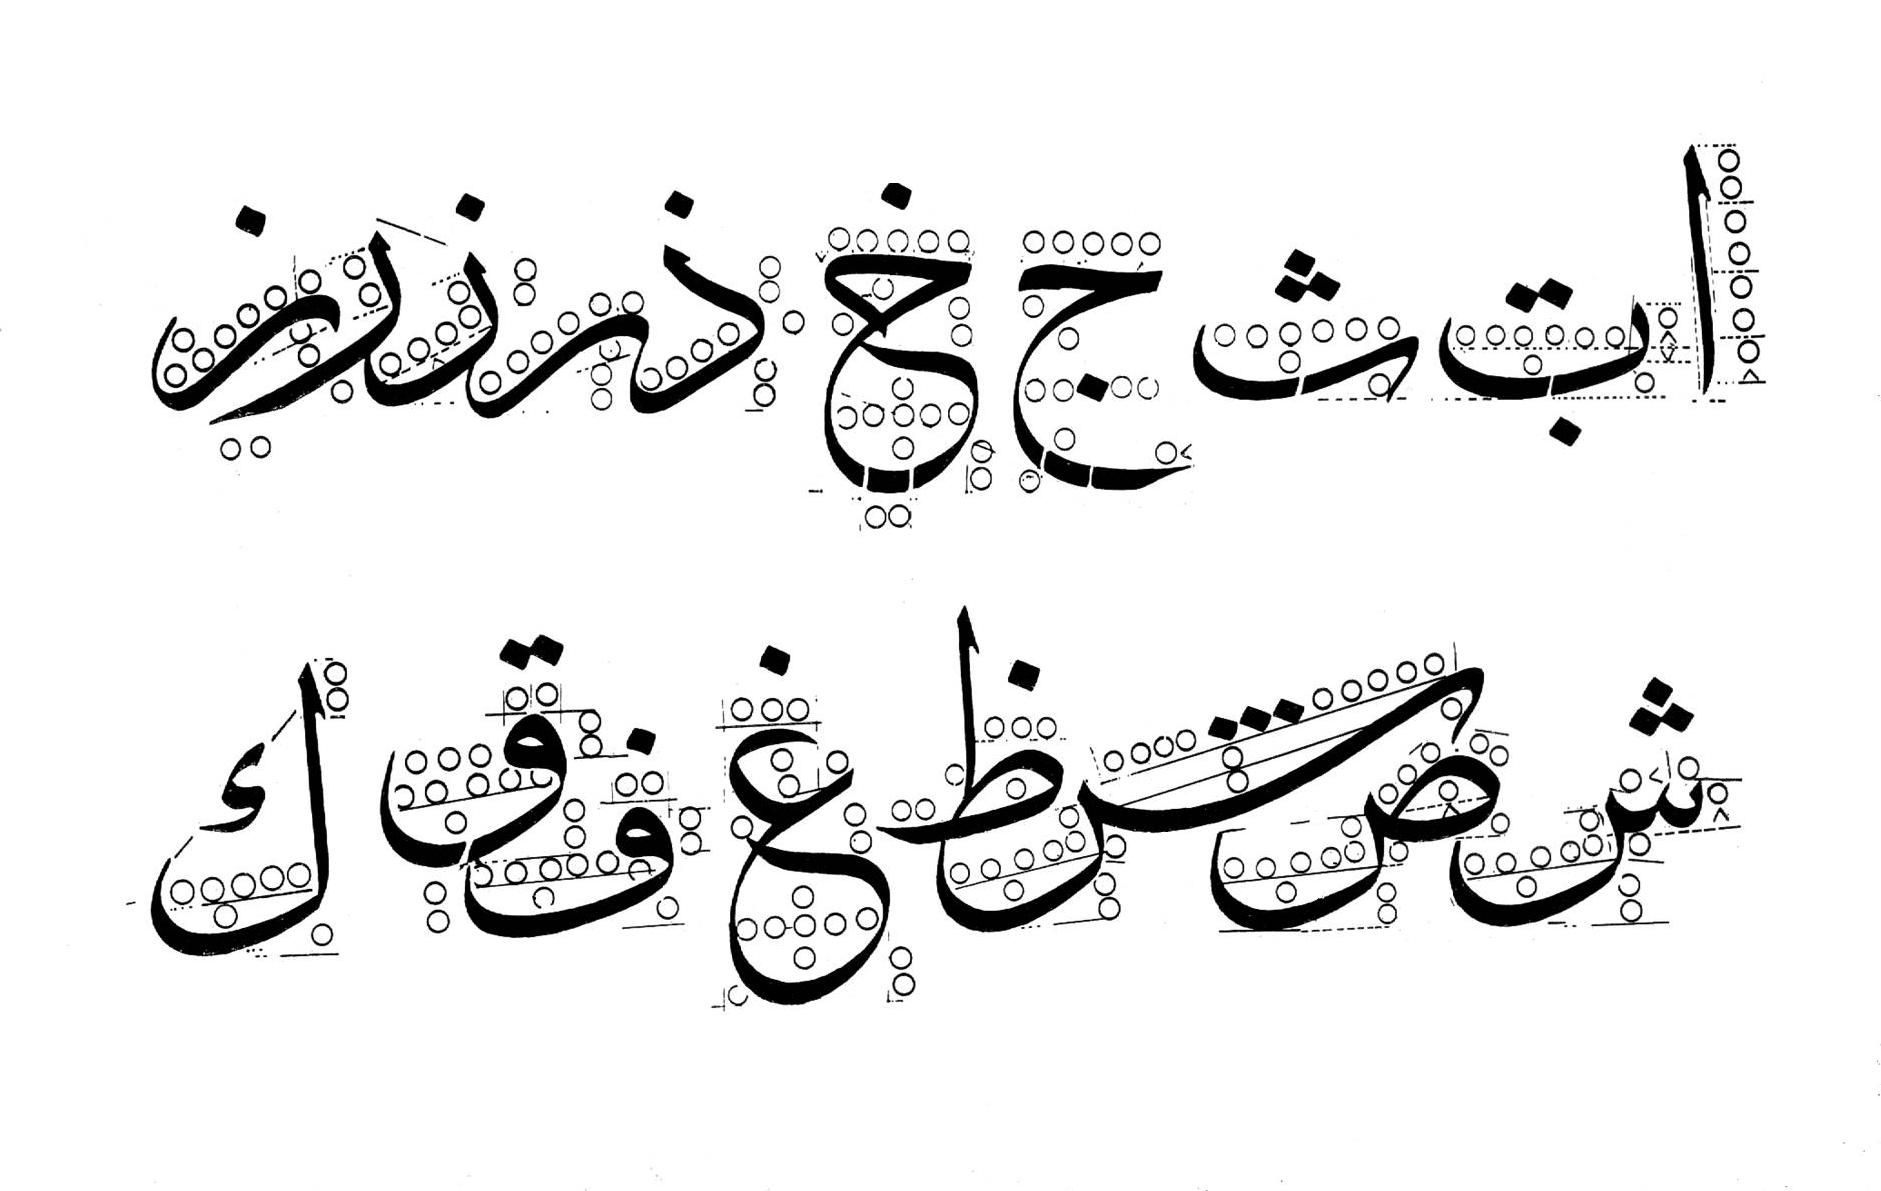 Pin By Gul Aytac On My Interesting Calligraphy Lessons Arabic Calligraphy Design Islamic Art Calligraphy